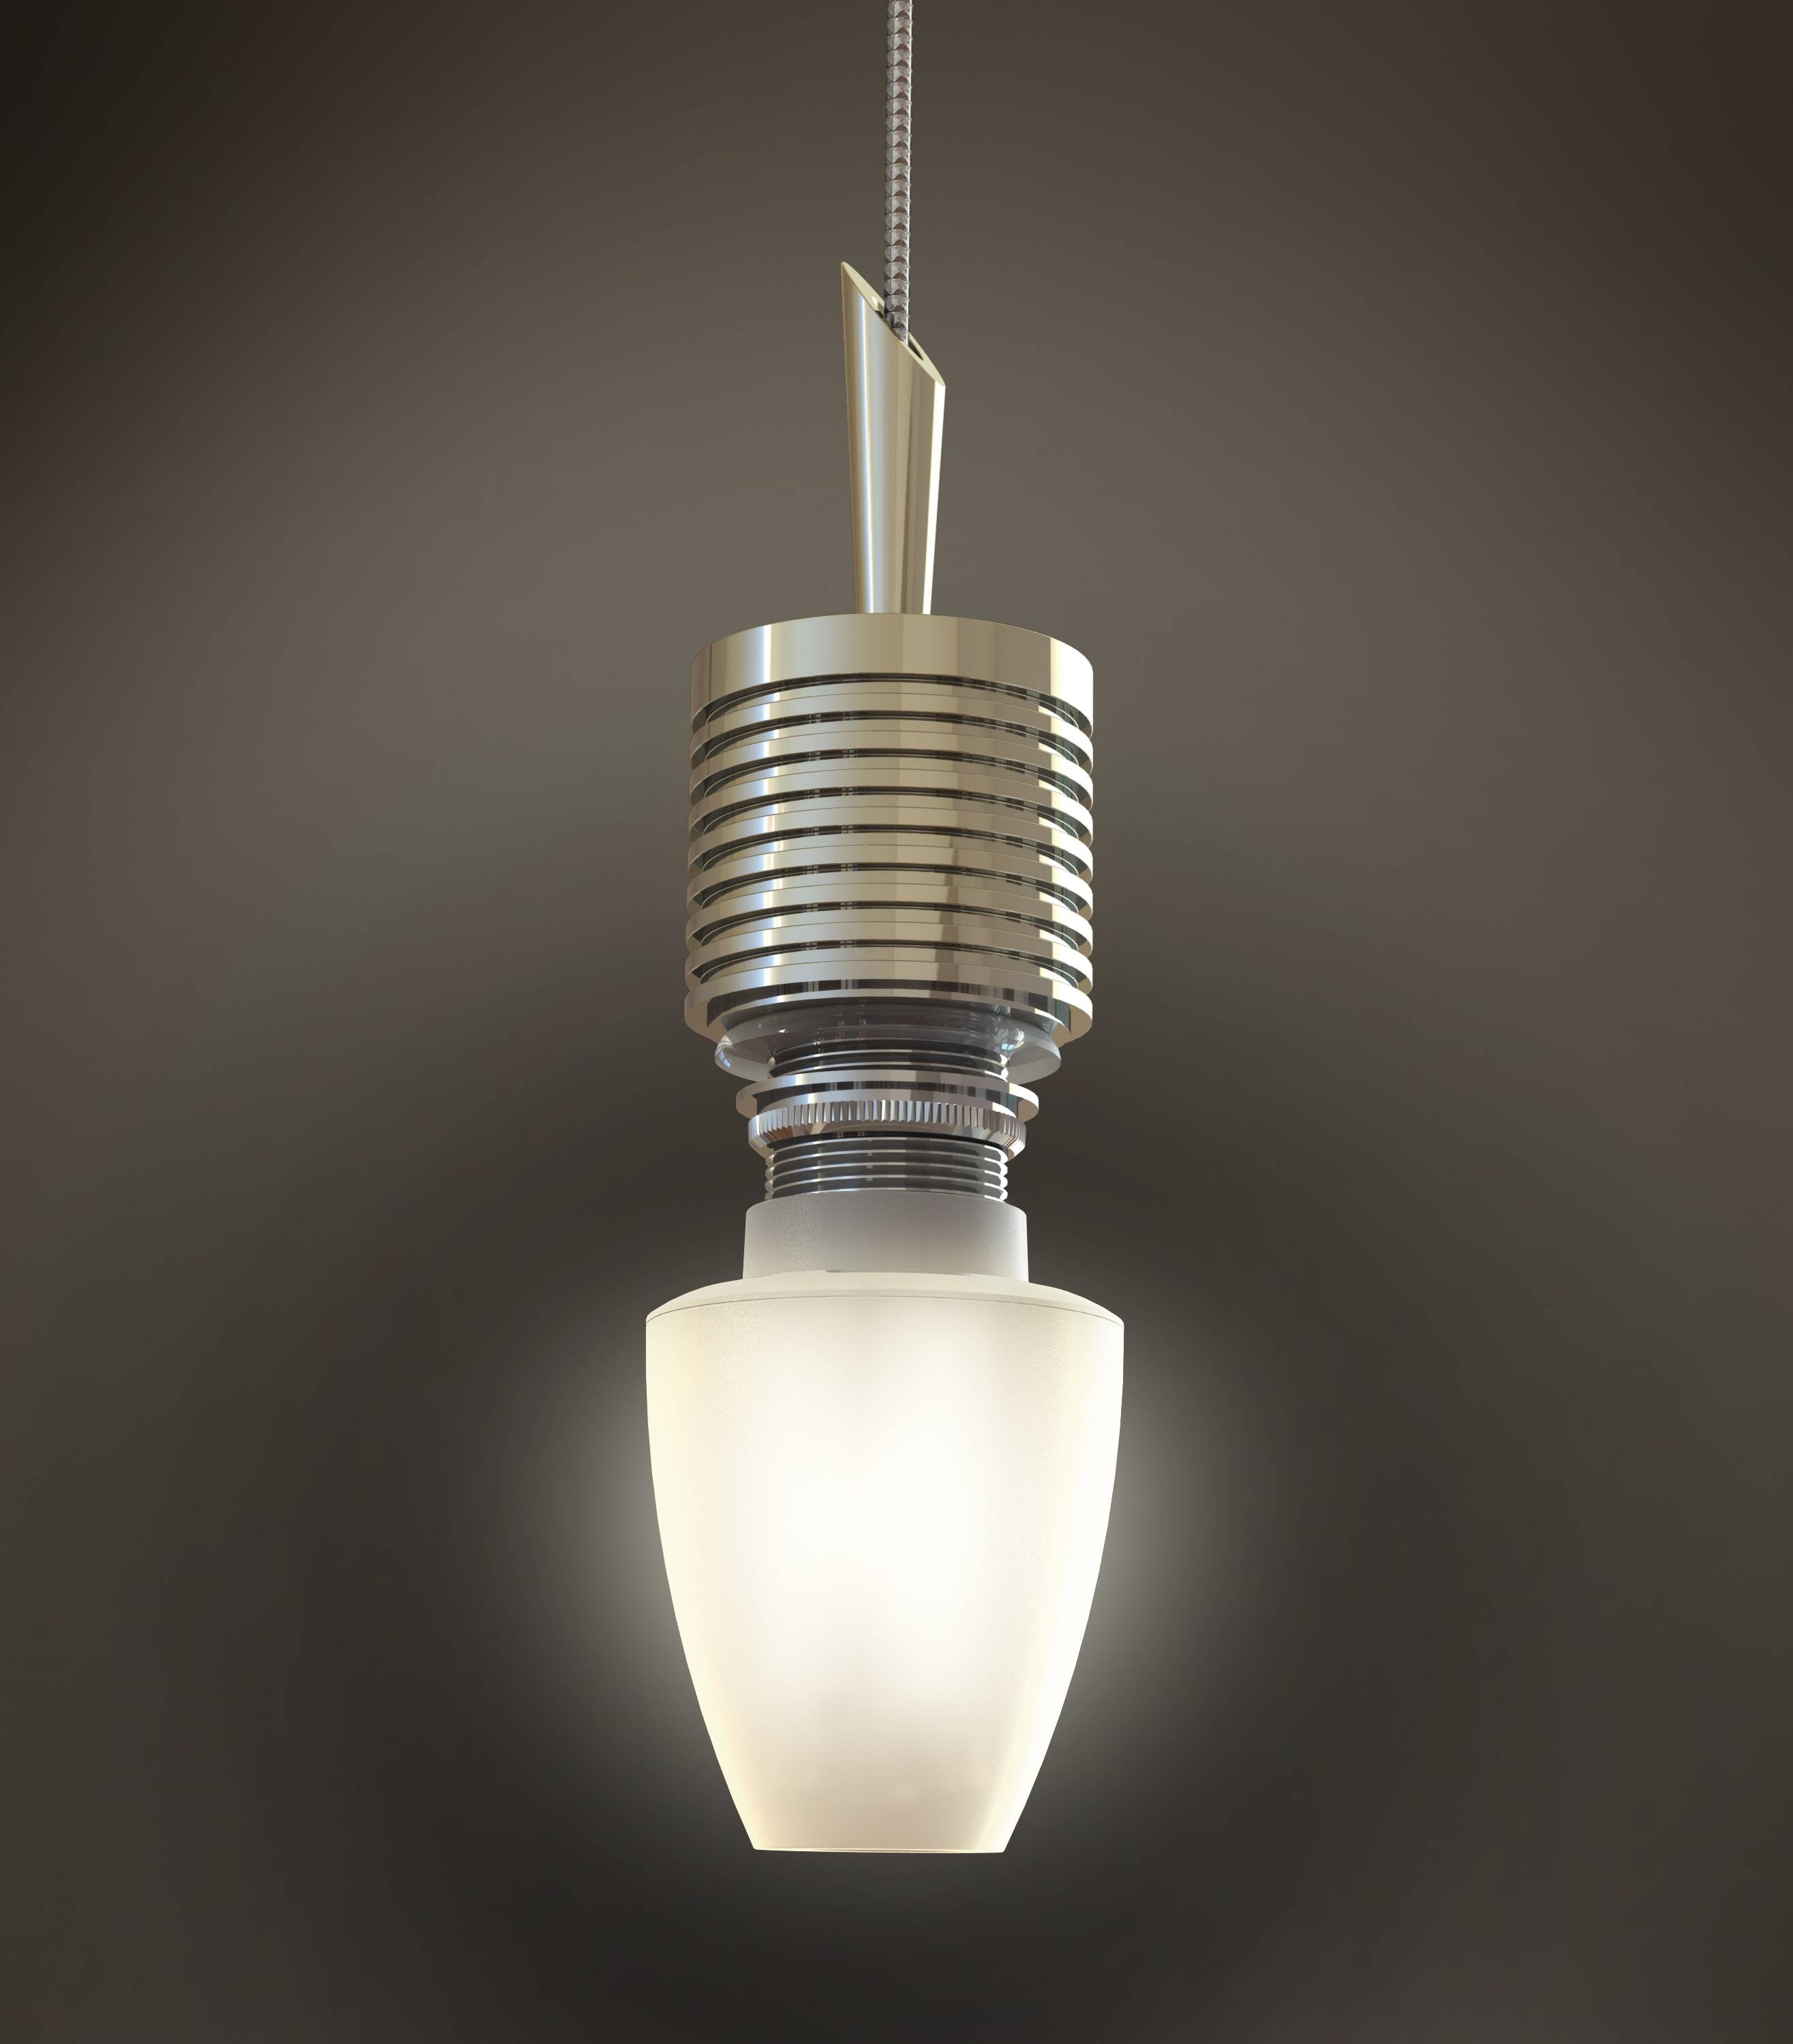 15 the best commercial hanging lights fixtures good commercial pendant light fixtures 18 with additional light throughout commercial hanging lights fixtures image mozeypictures Choice Image